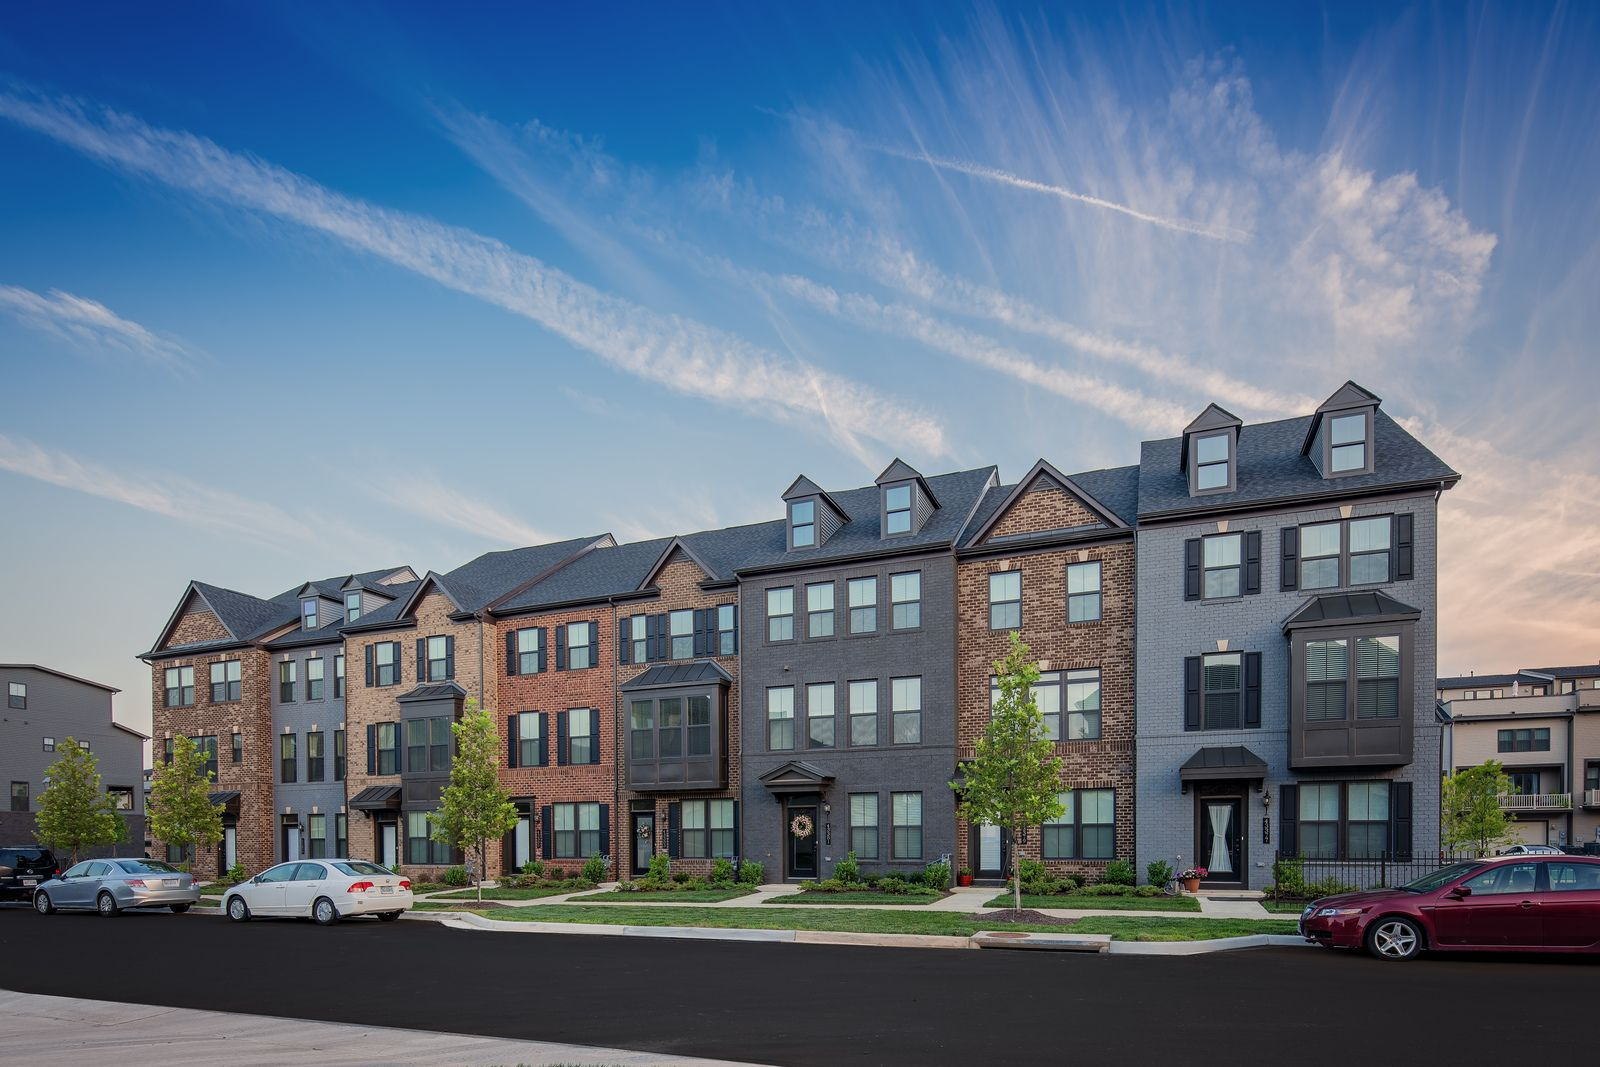 """See why Centerpointe Townes is Selling Fast, 22 new homeowners in under 3 months!:Exclusive modern brownstones in Midlothian with private terraces, 2 car-garages and conveniently located in Chesterfield """"New Downtown"""" offering walk-ability and convenience. Contact us today"""